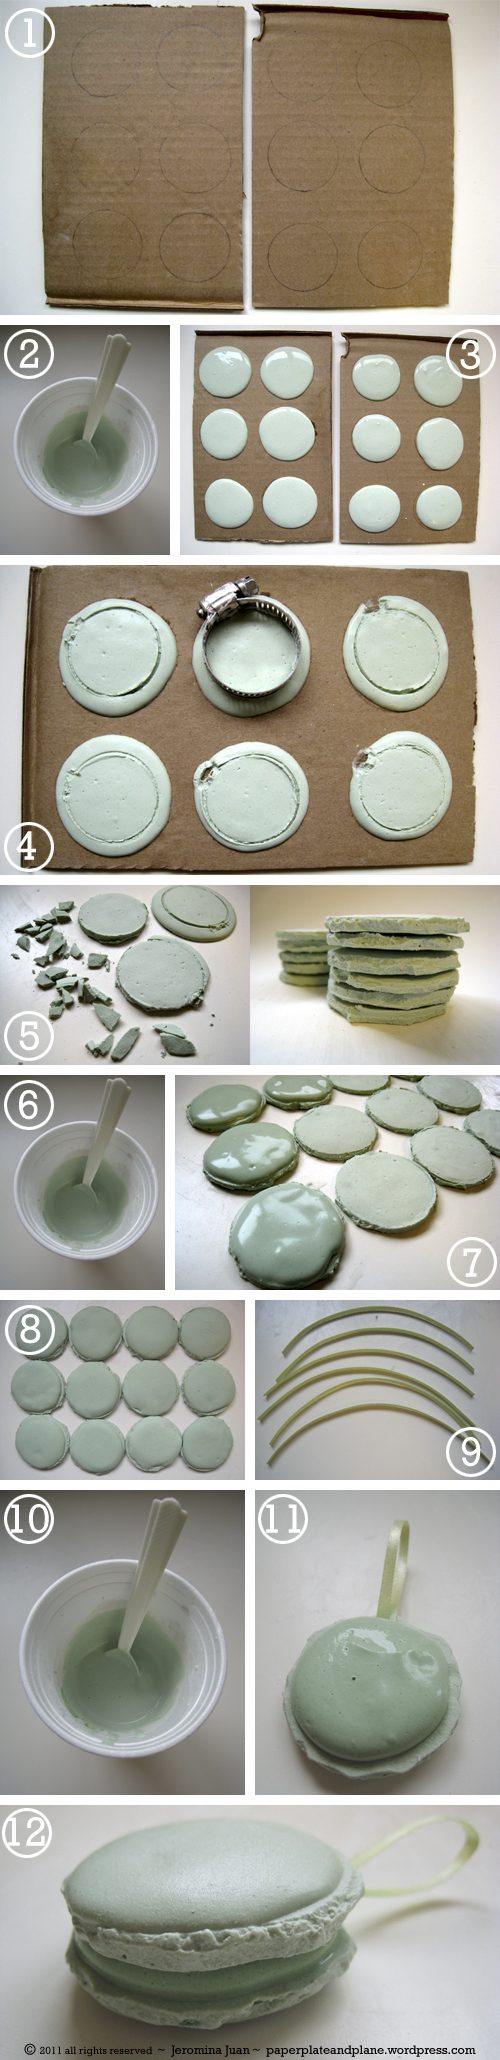 Diy plaster french macaron ornaments you could also make these with